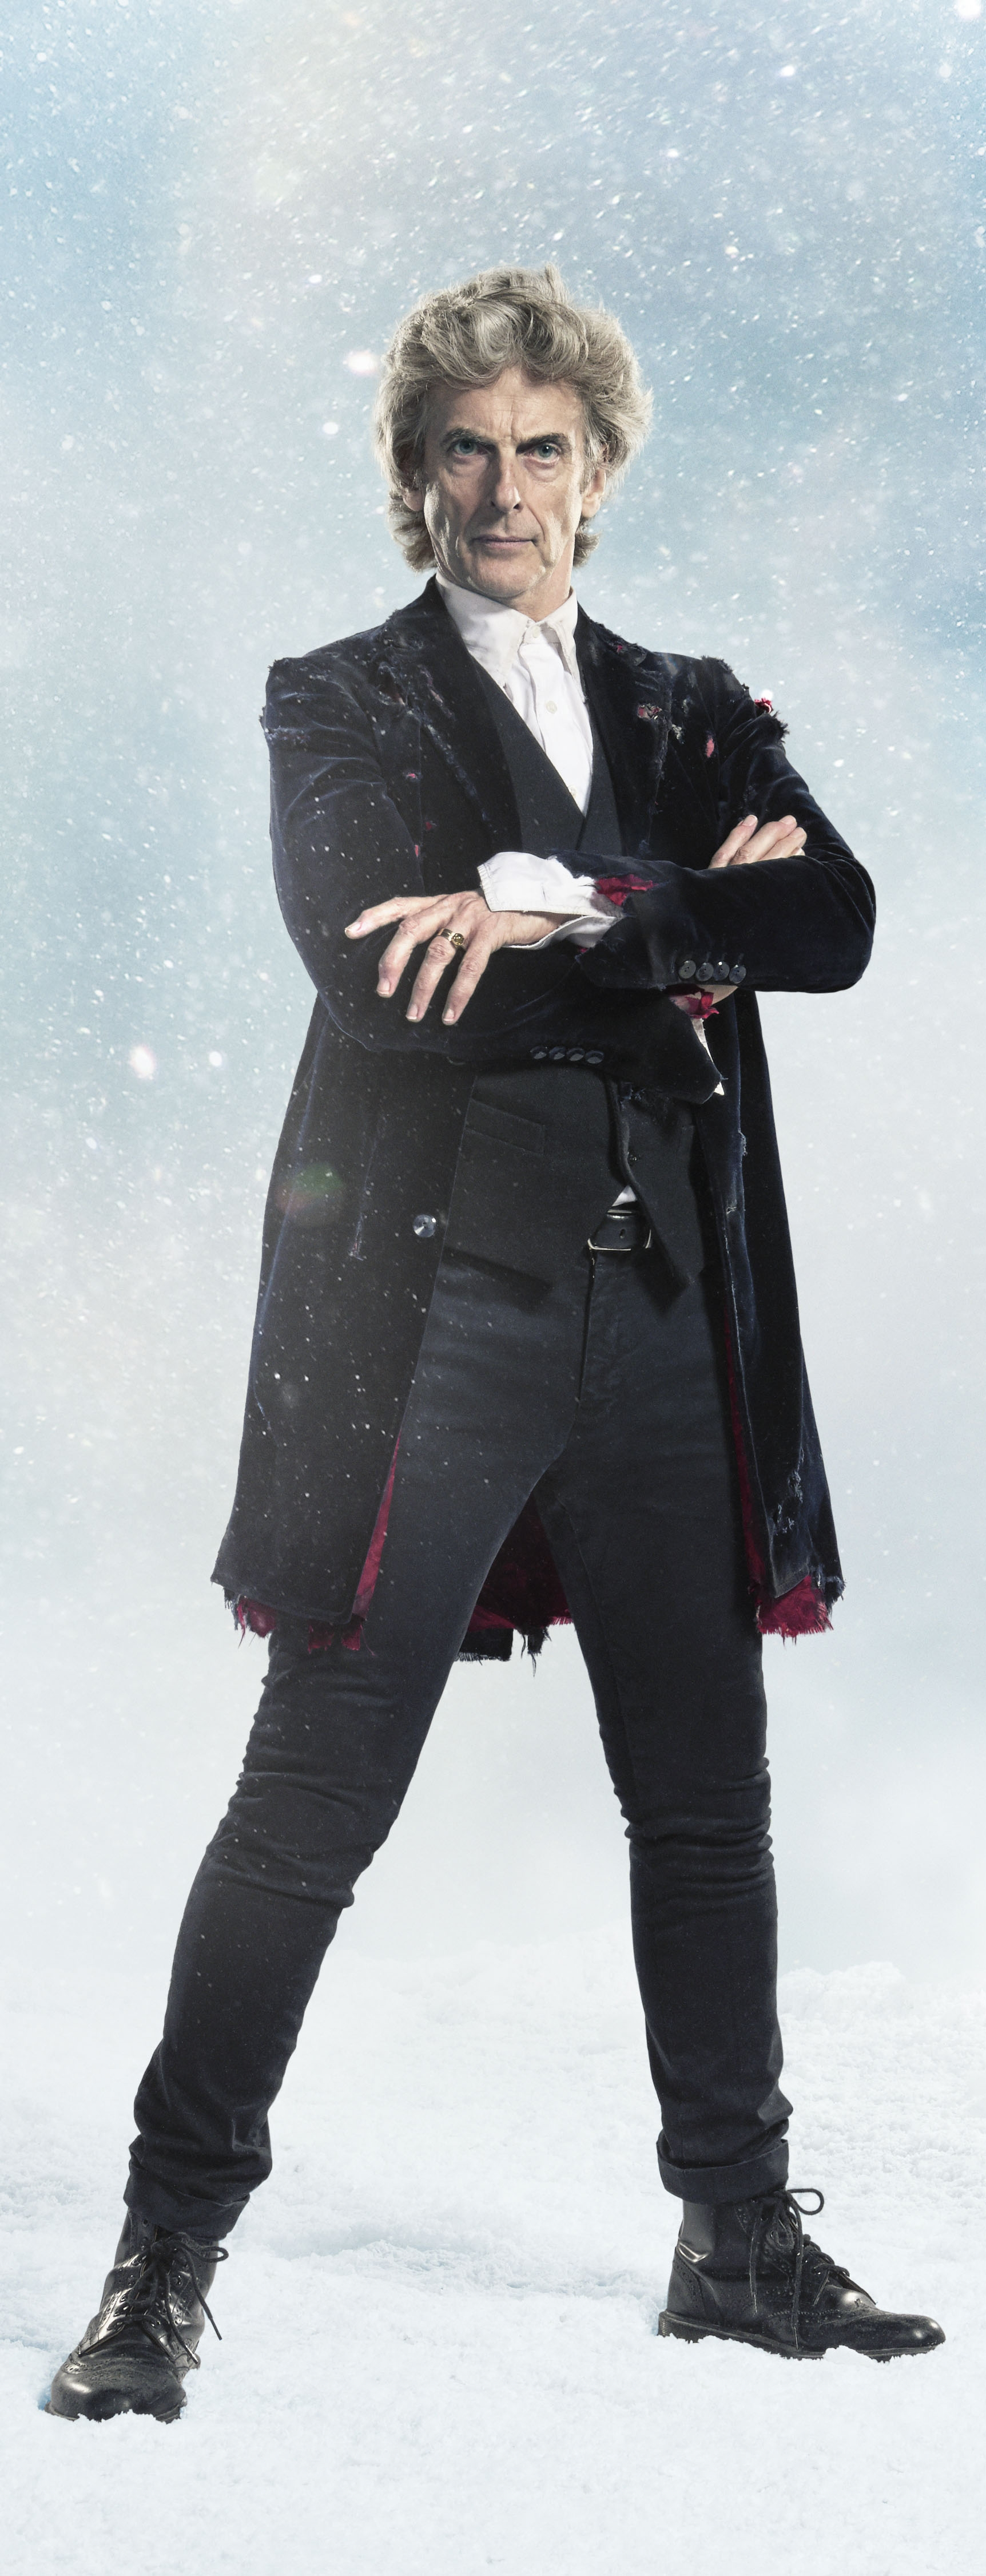 Peter Capaldi as the Doctor, Twice Upon A Time (Credit: BBC)